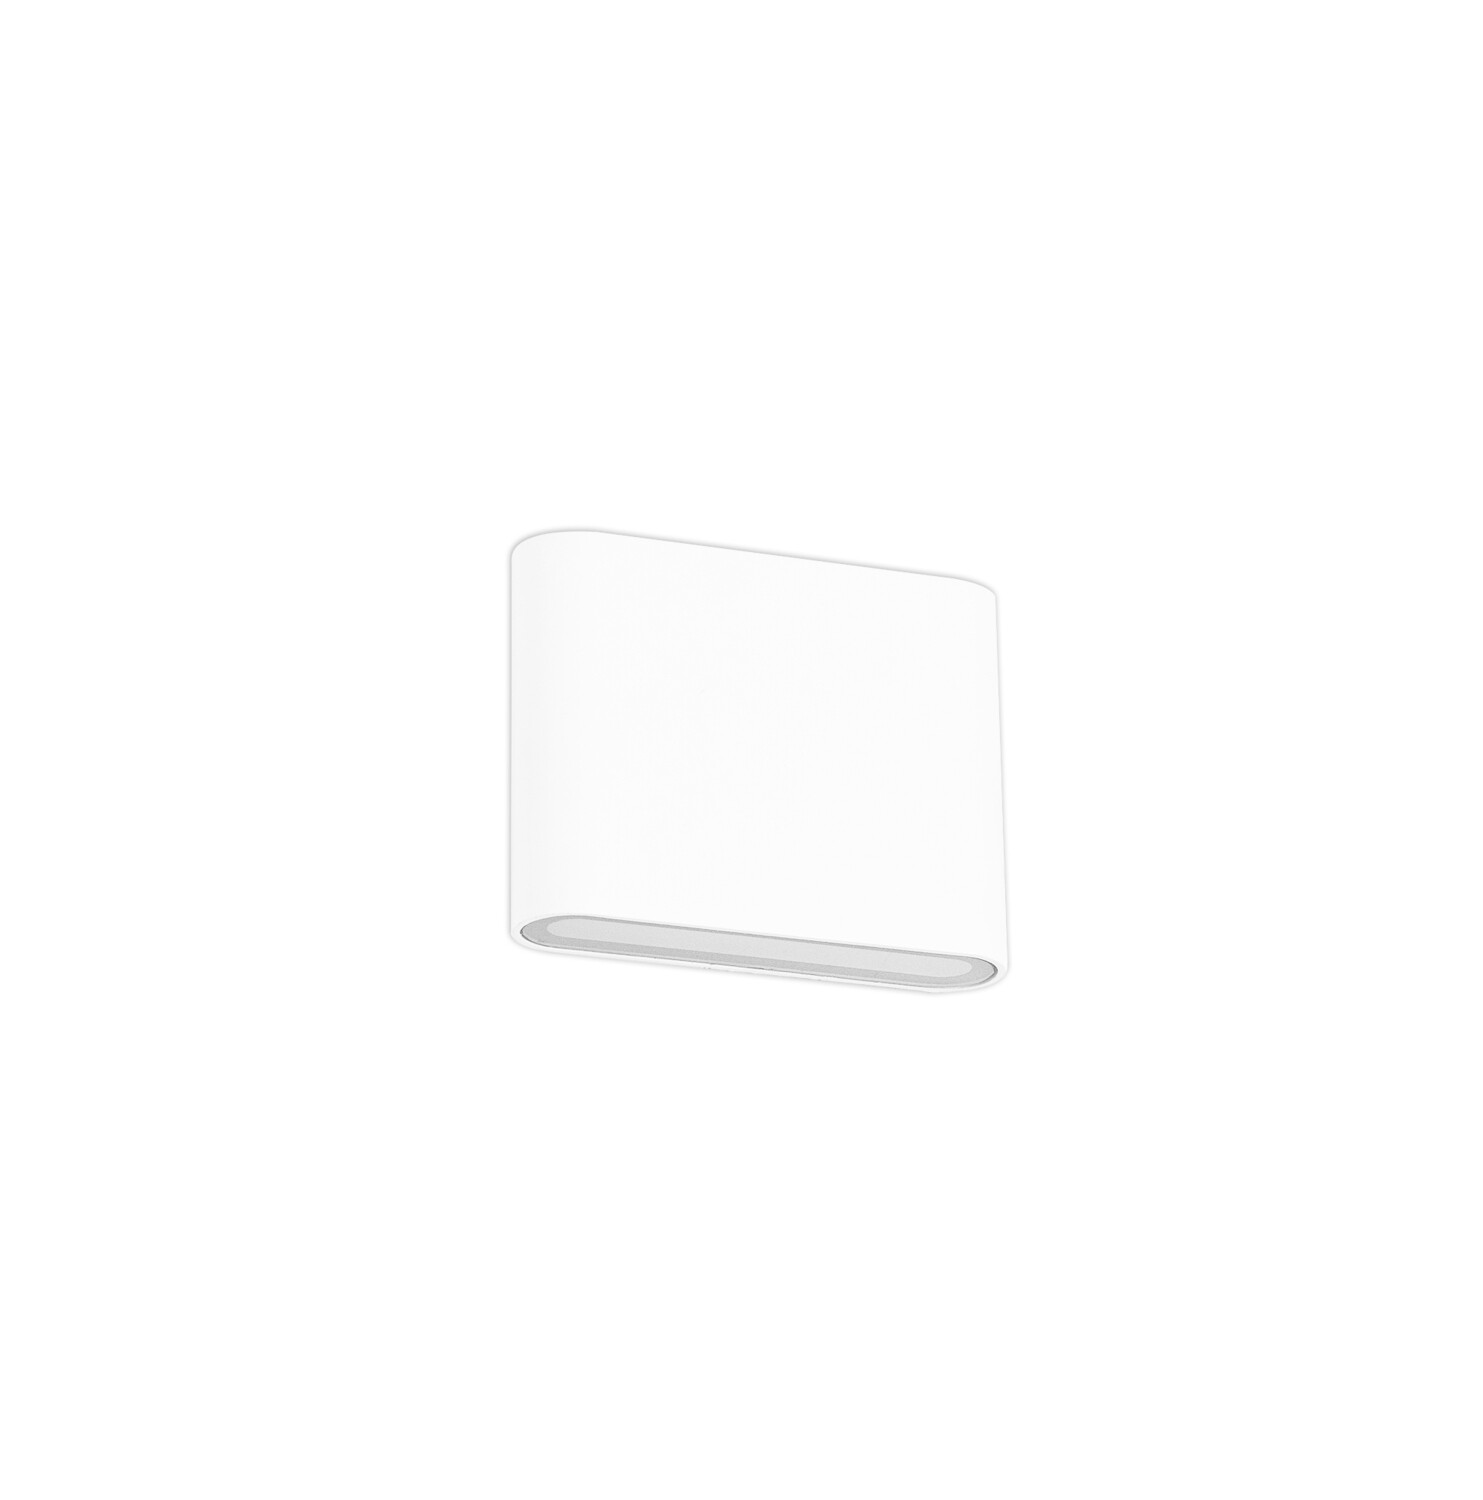 Contour Small Up &  Down Wall Light LED 2x3W 350lm 3000K IP54 Sand White